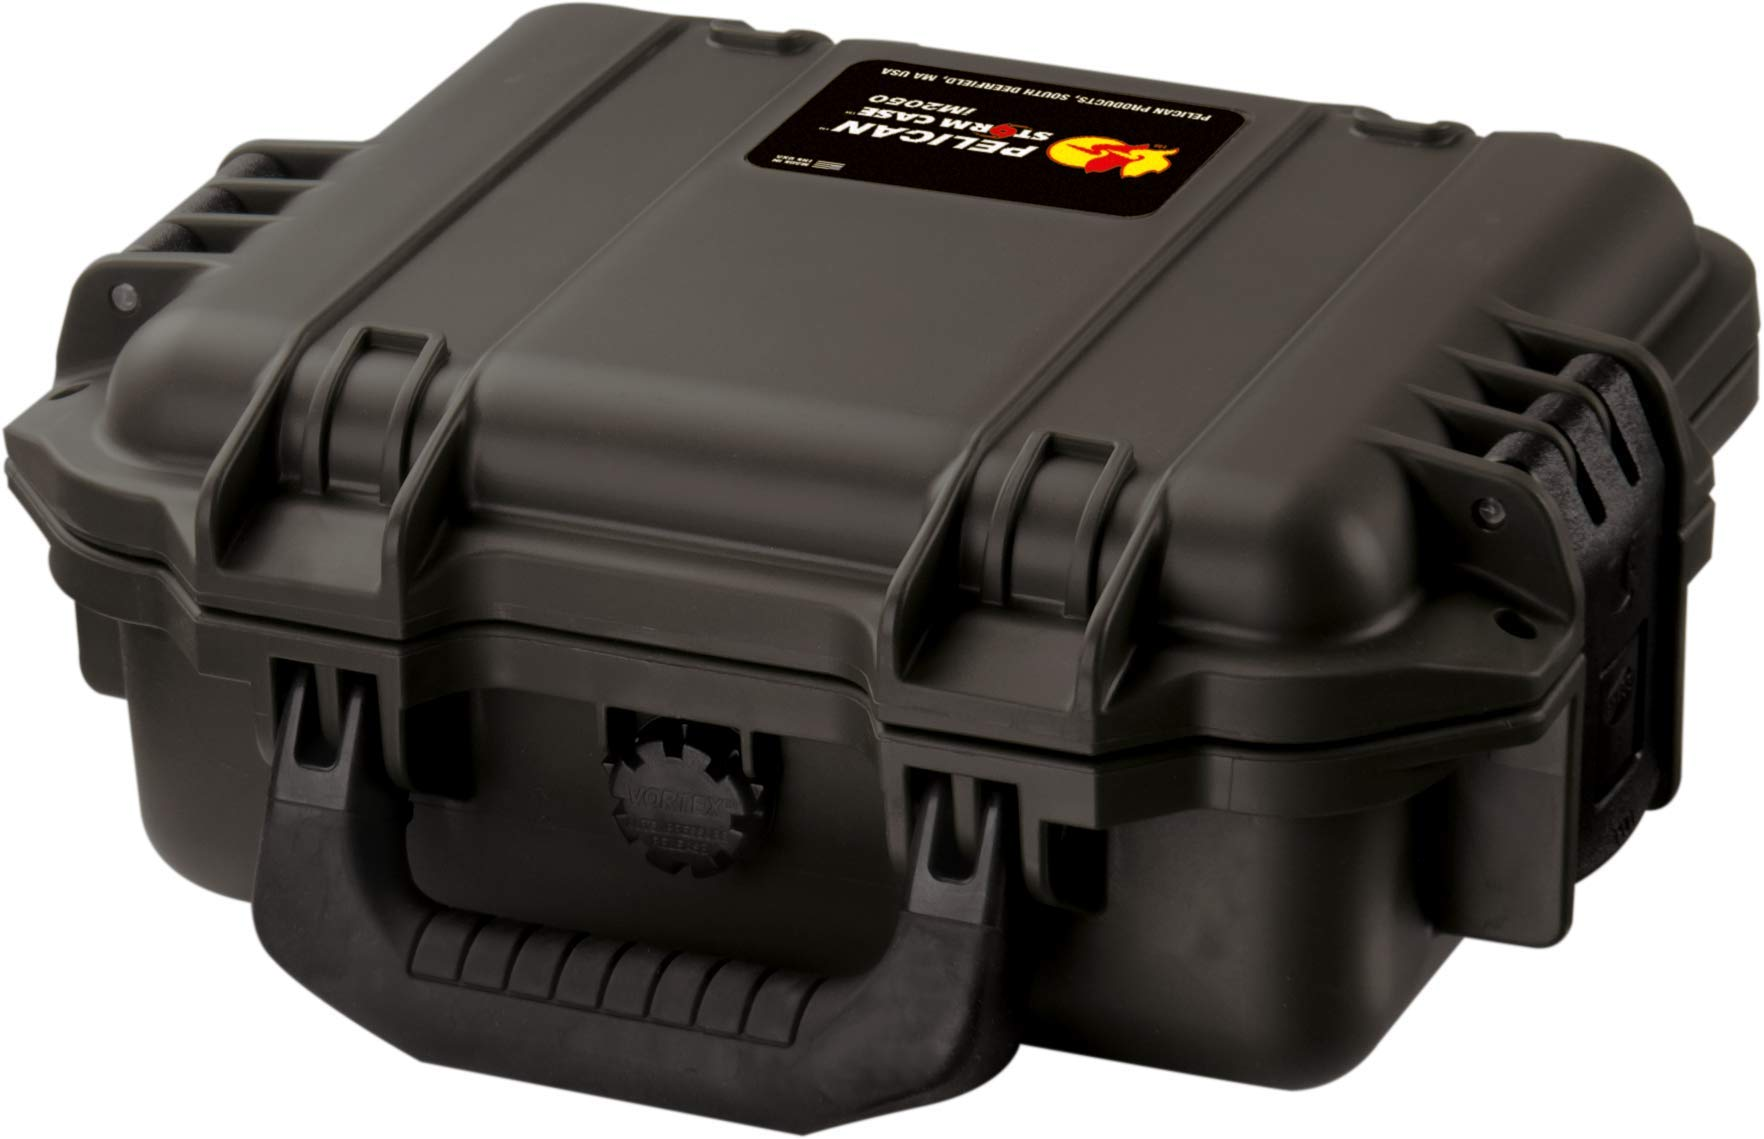 Waterproof Case (Dry Box) | Pelican Storm iM2050 Case With Foam